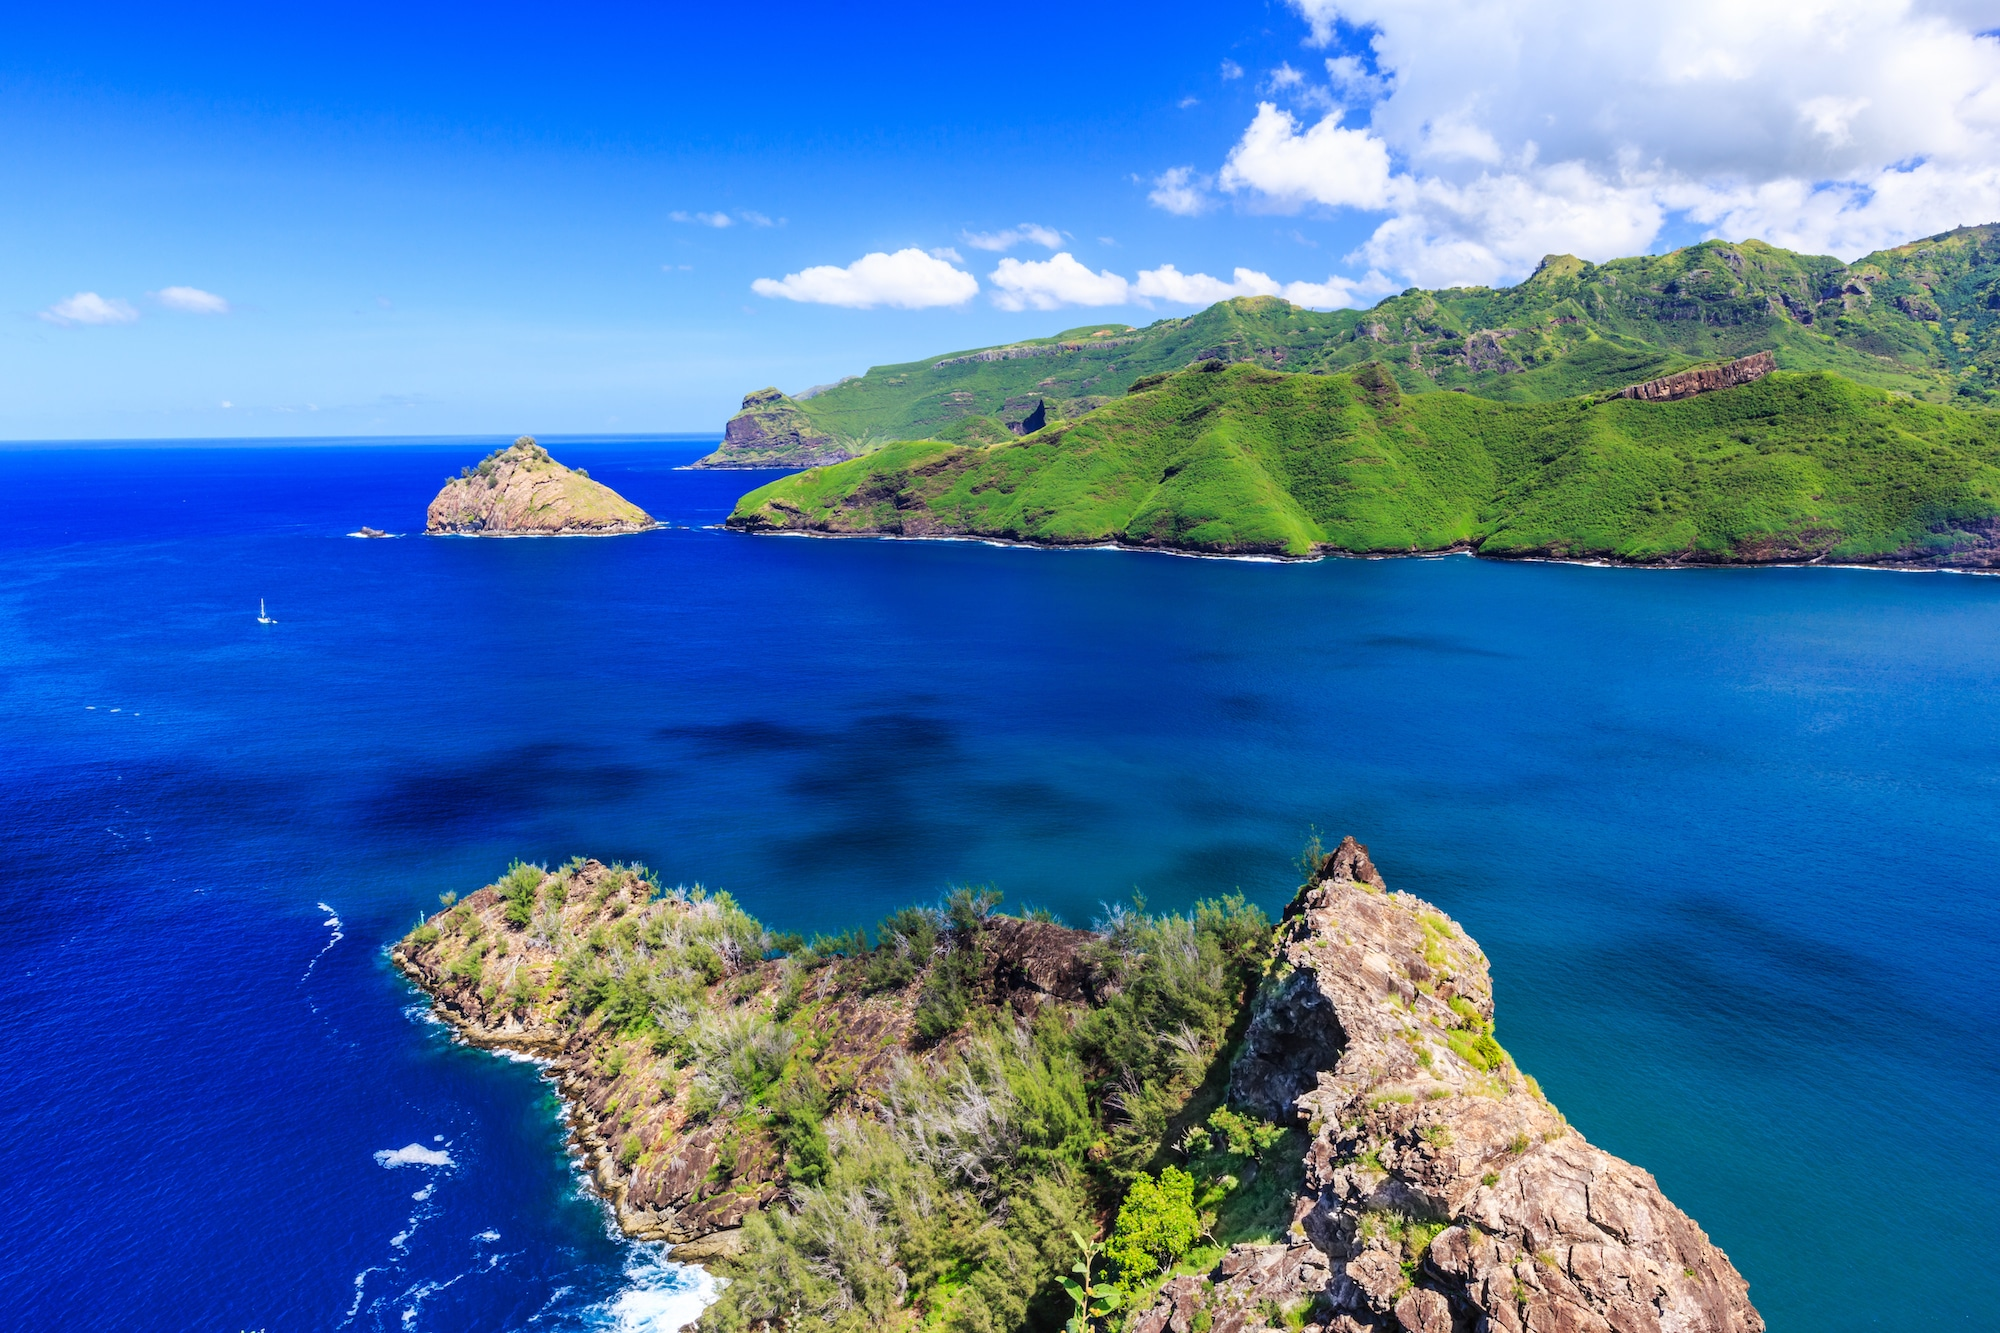 Marquesas Islands. Bay of Taiohae on the island of Nuku Hiva.